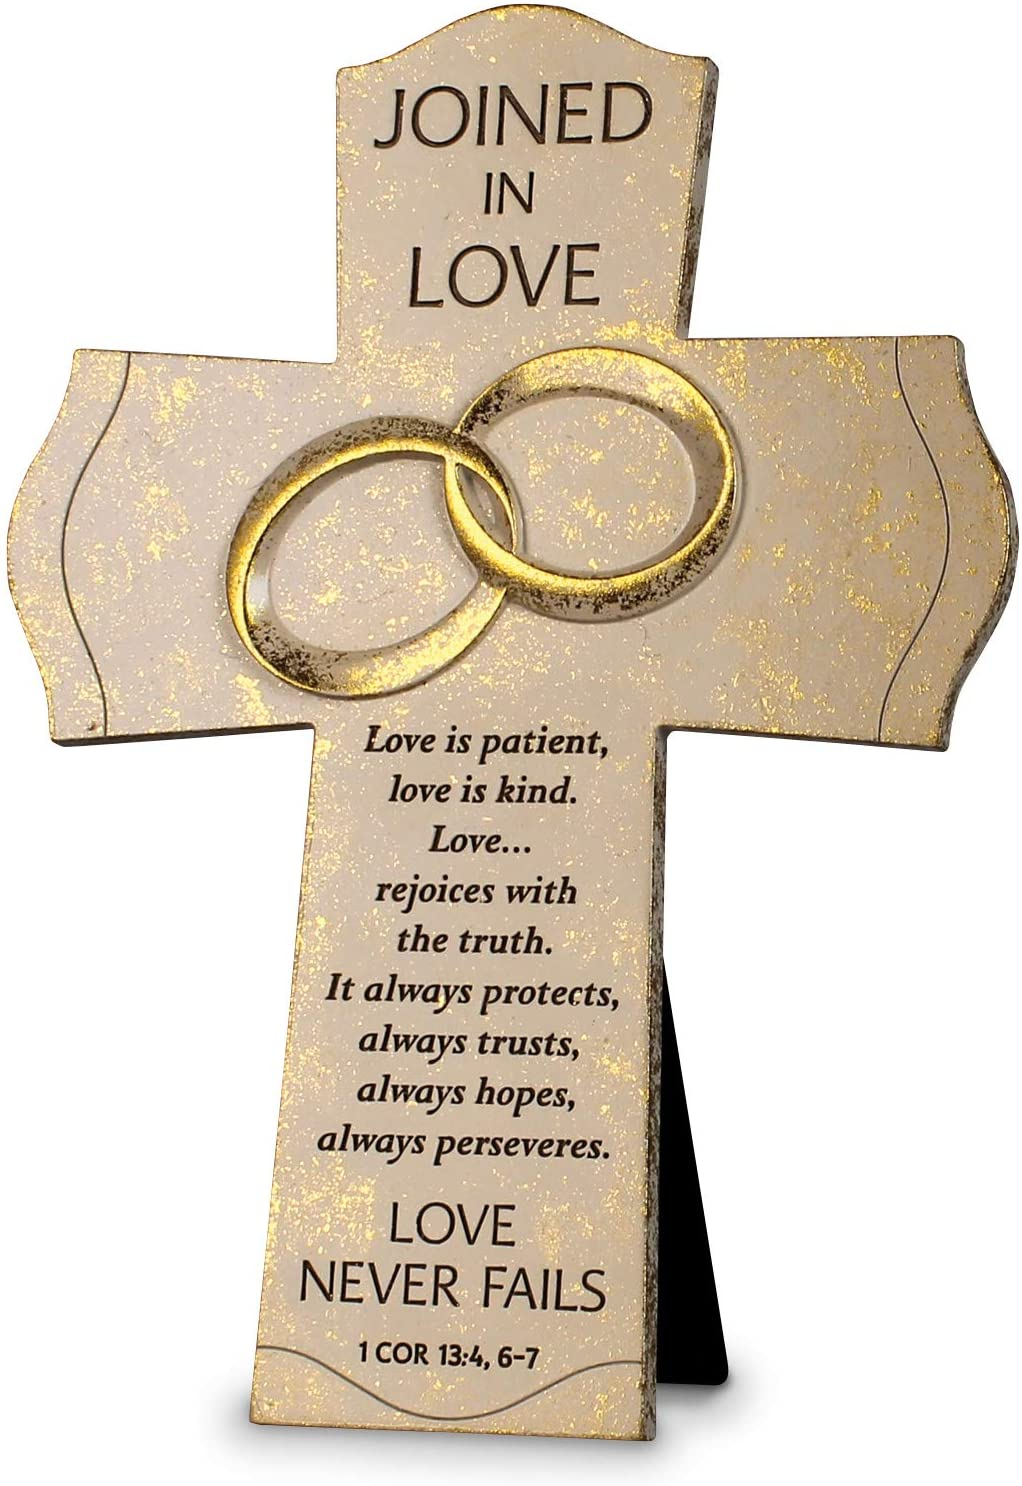 Lighthouse Christian Products Joined Love Never Fails Flecked Gold Tone 10 Inch cast Stone Cross Figurine